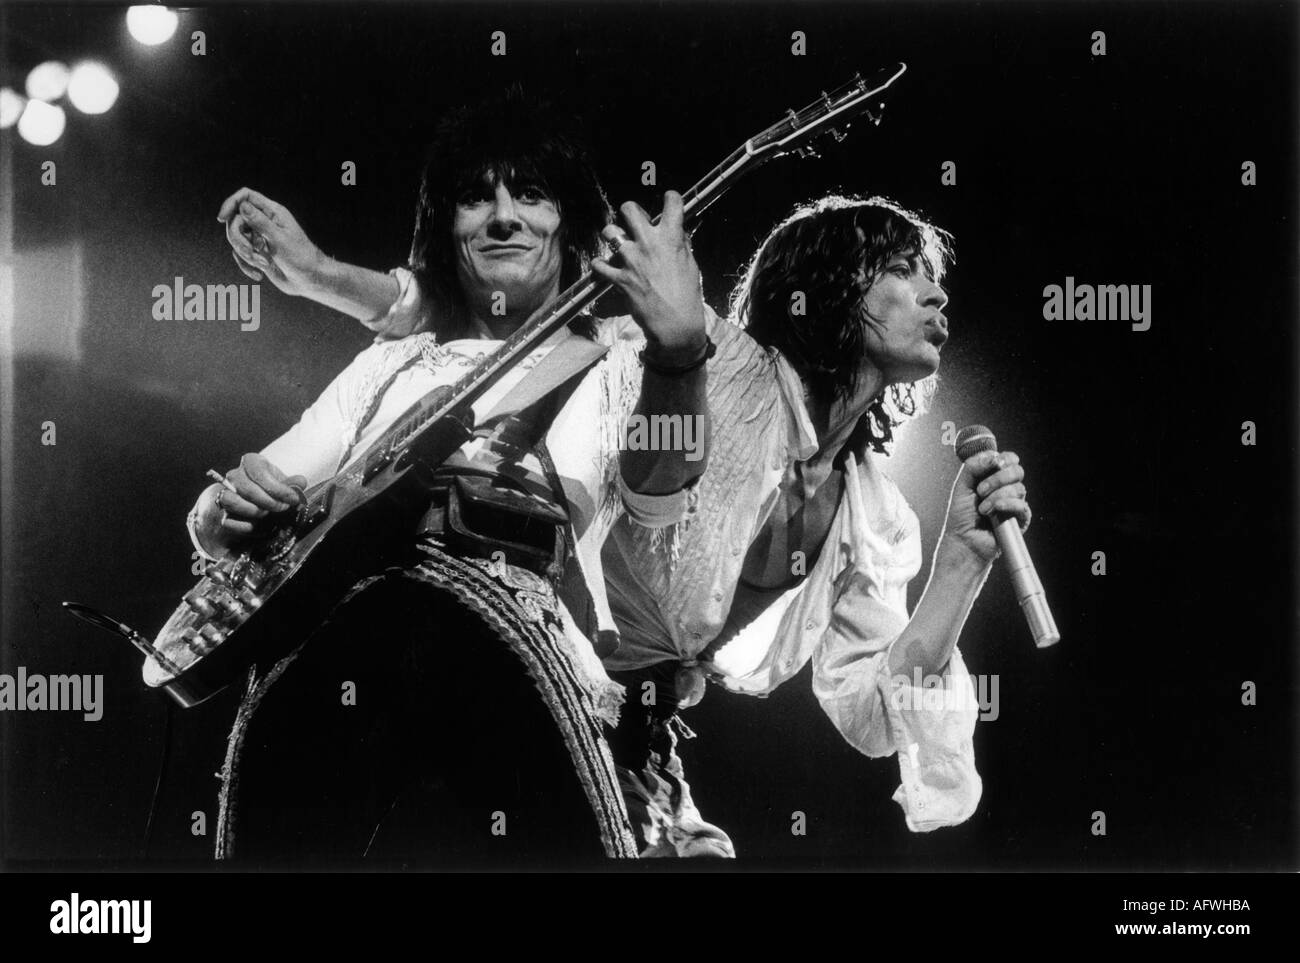 Mick Jagger, Ronnie Wood of The Rolling Stones London UK 1976.1970s UK Earls Court Concert HOMER SYKES - Stock Image